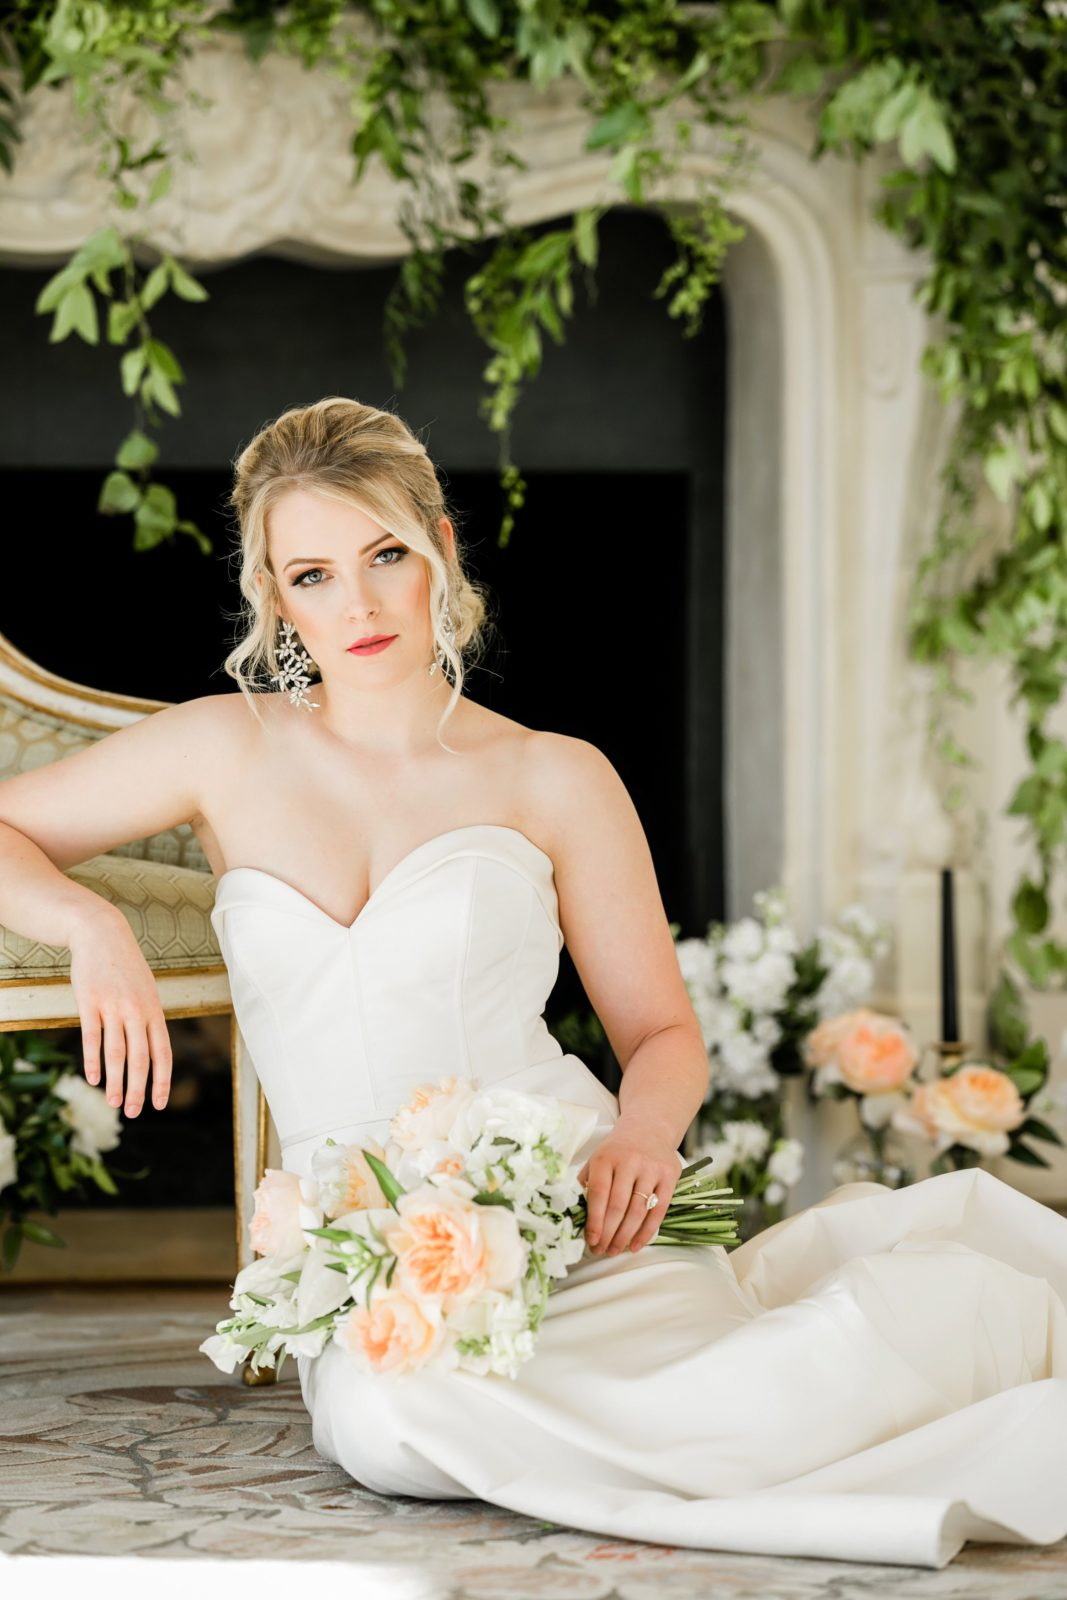 Sophisticated bridal fashion: Sophisticated and Chic wedding inspiration on Alexa Kay Events